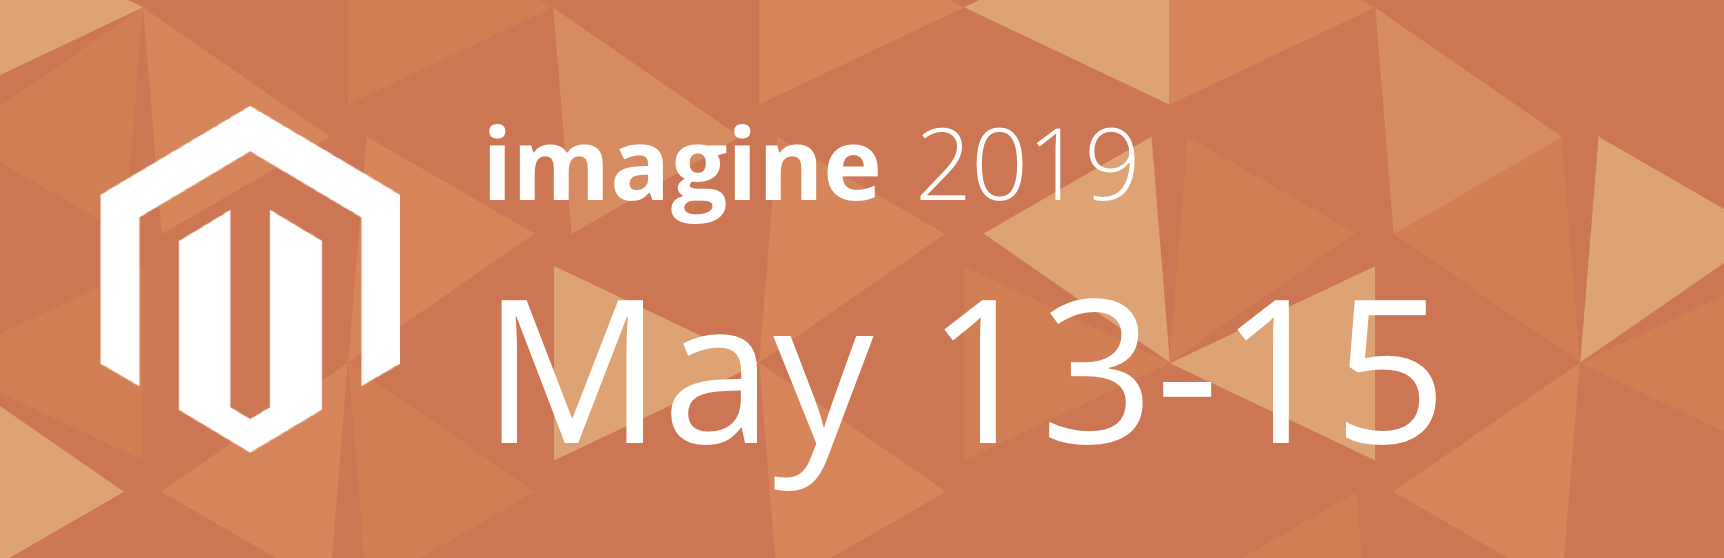 Magento Imagine 2019 May 13 to 15 2019